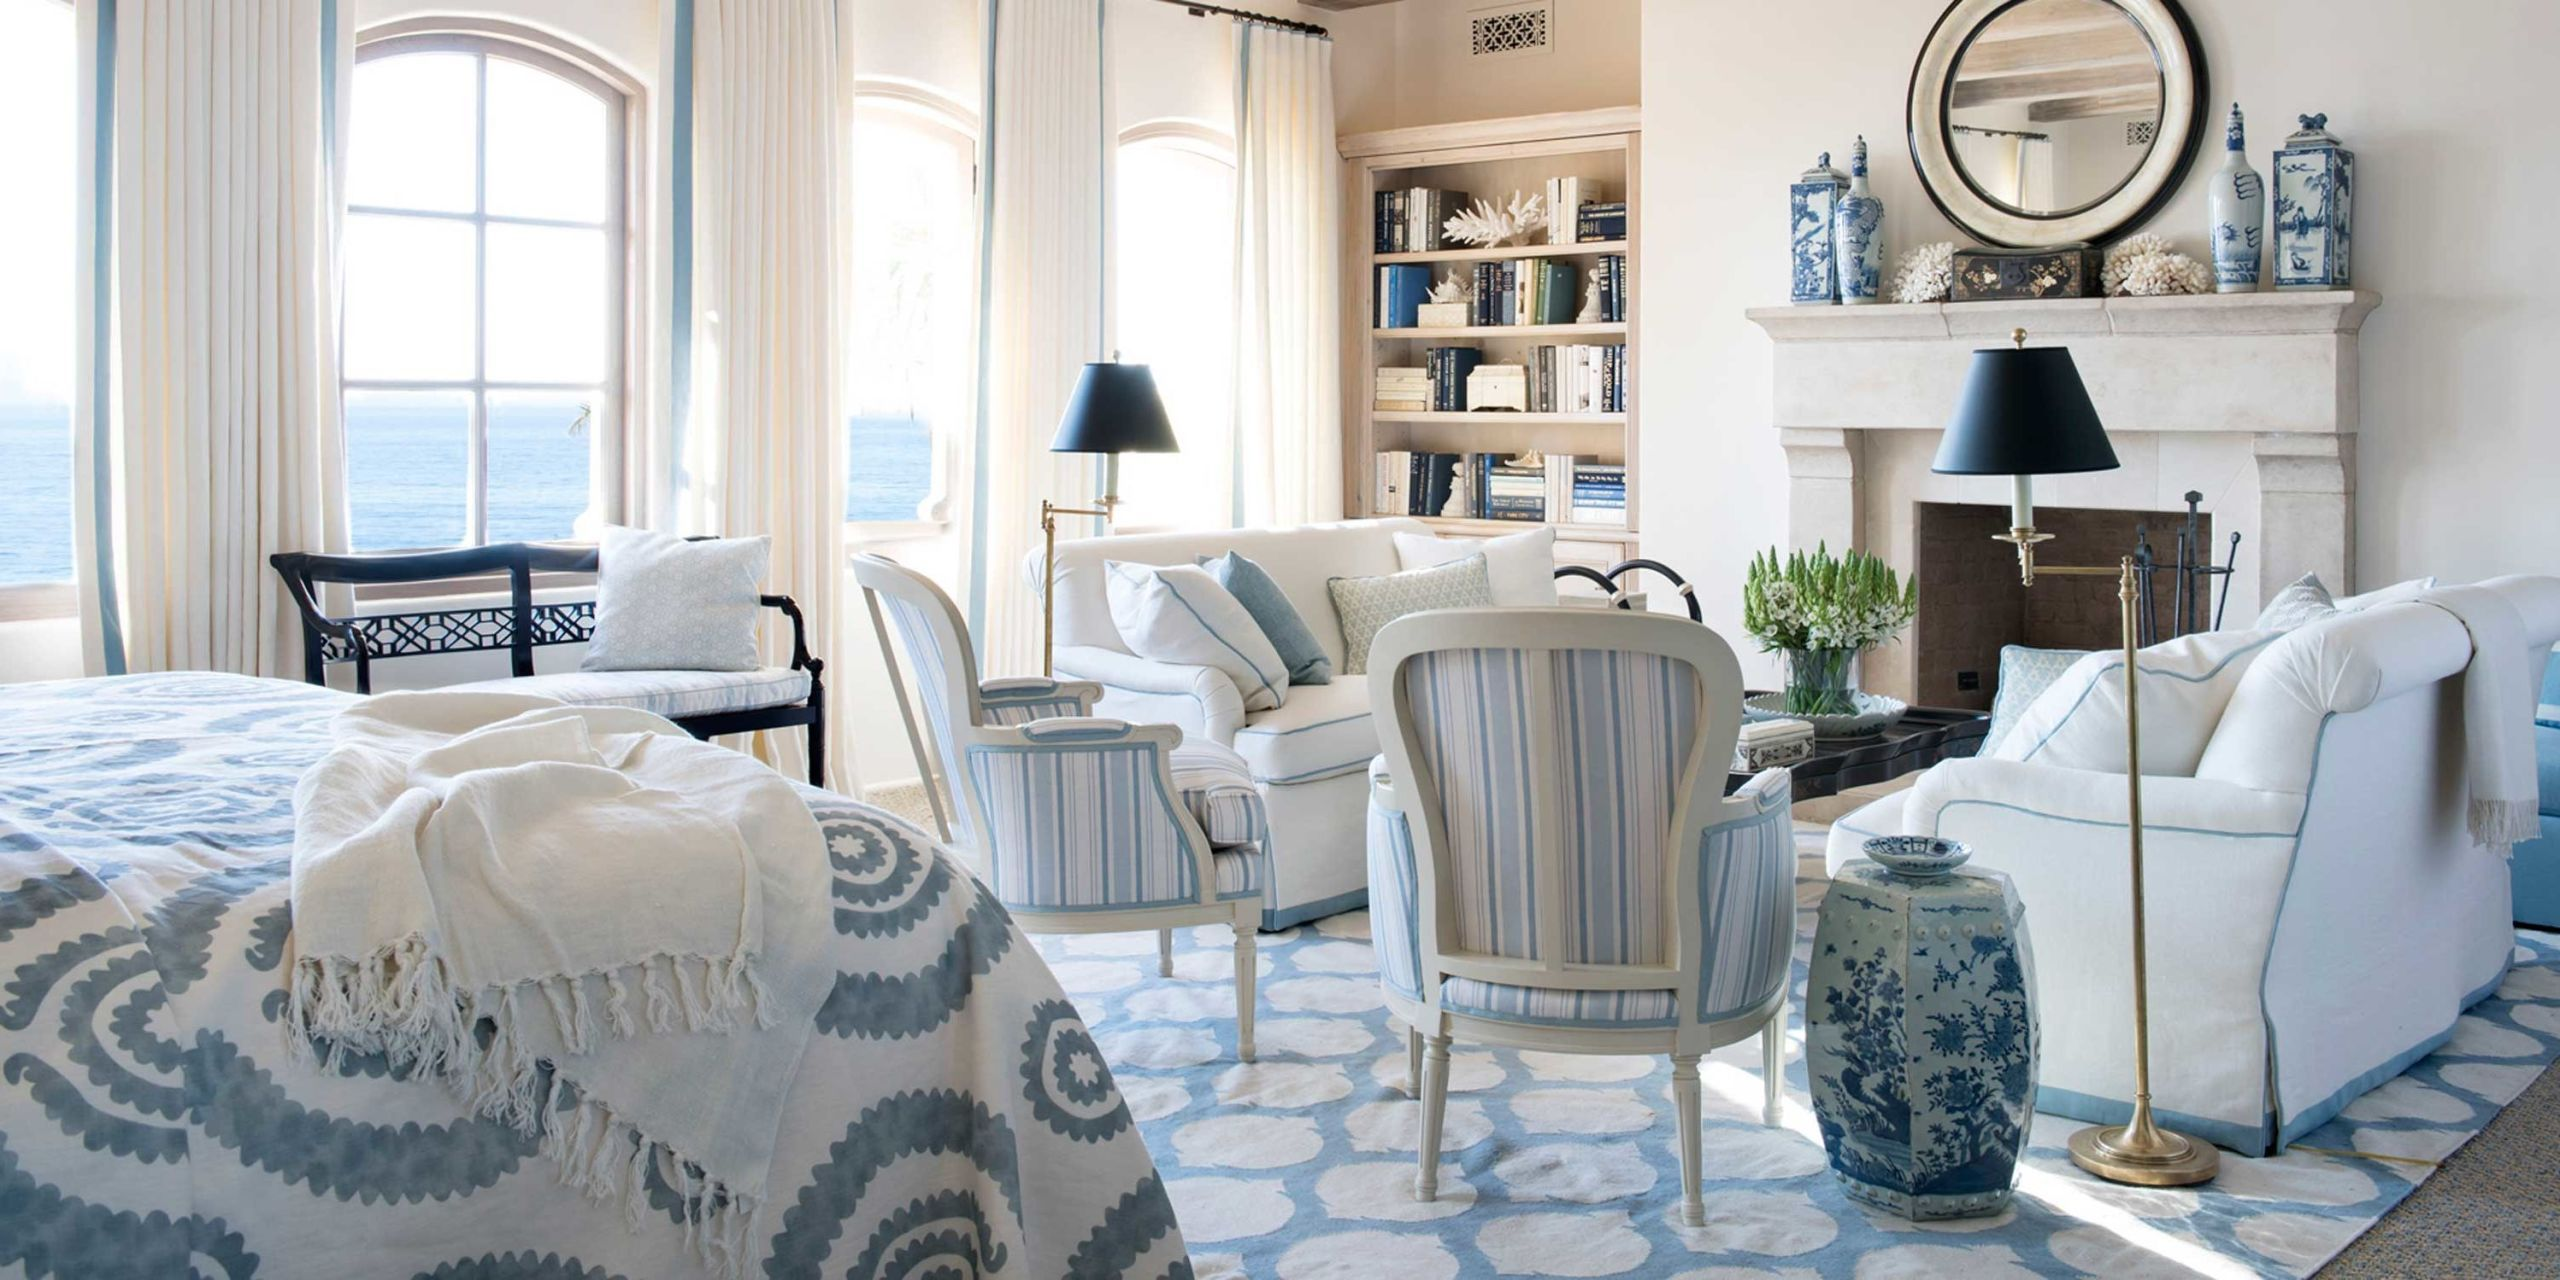 The Classic Combination Of True Blue With Bright White Is Still A Timeless  Country Paletteu2014here Are A Few Of Our Favorite Rooms That Wear The Colors  Well.